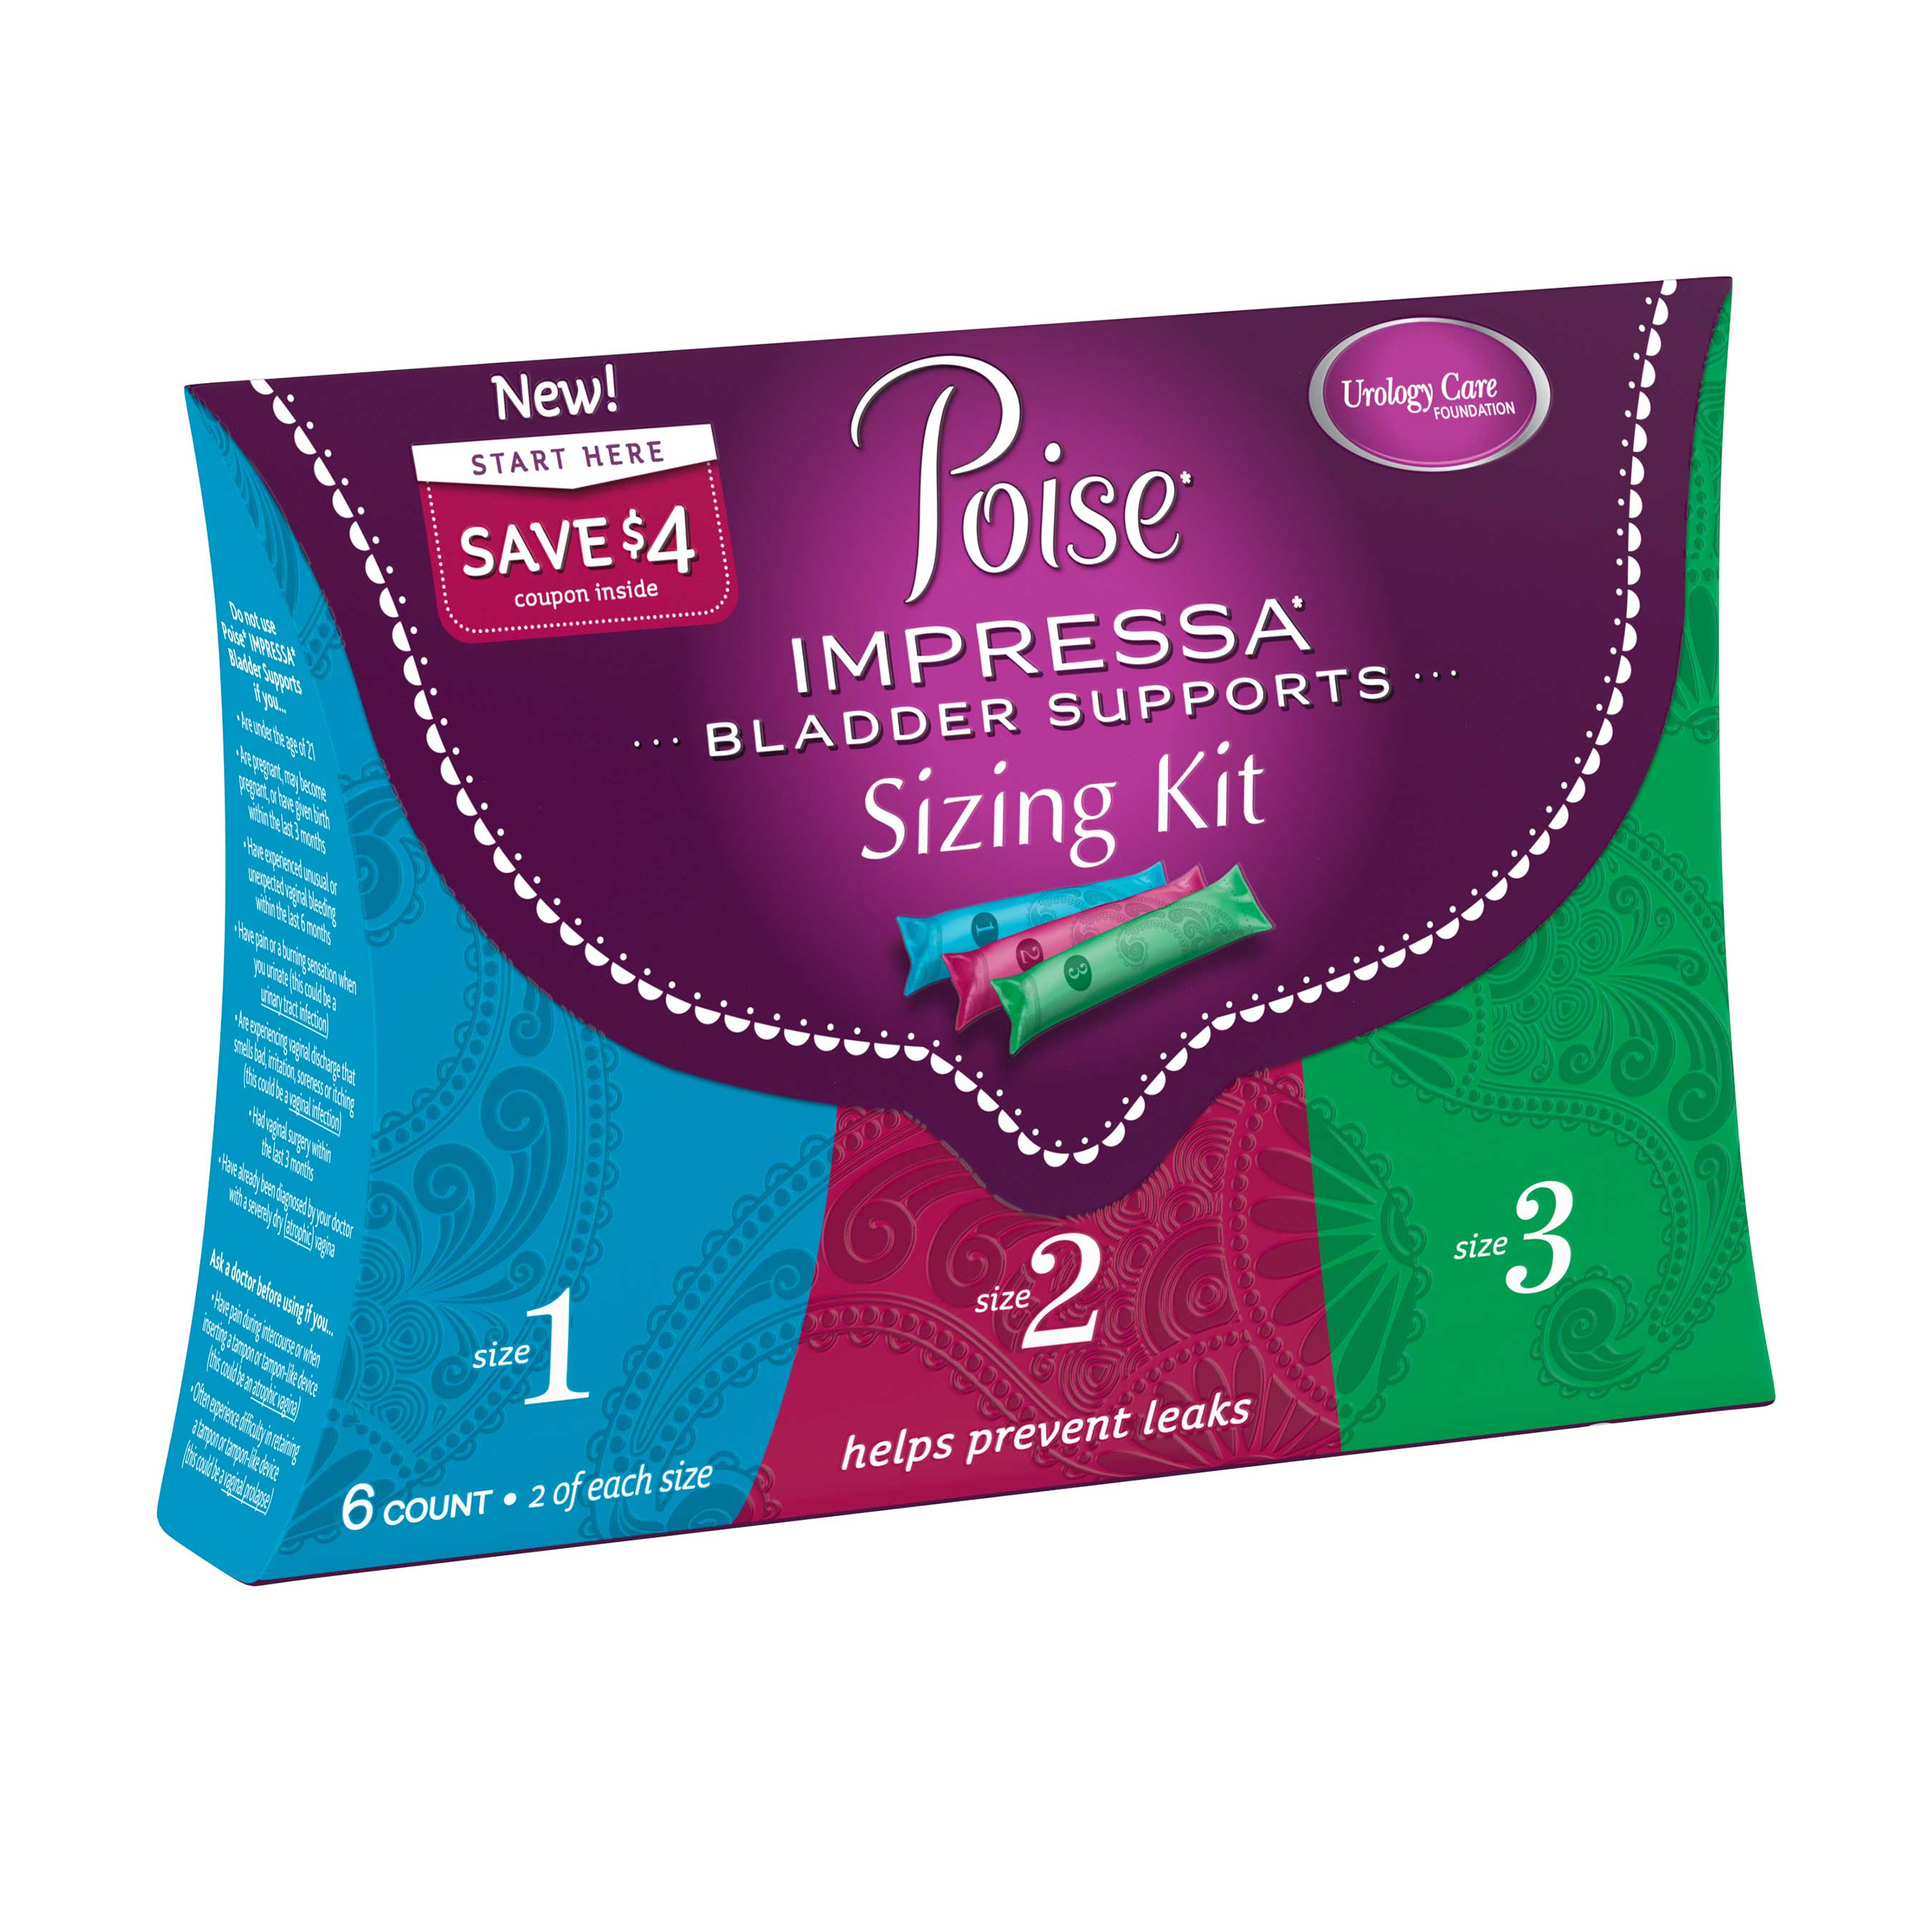 Women should start with the Poise Impressa Sizing Kit to find the size that helps to effectively stop their ...